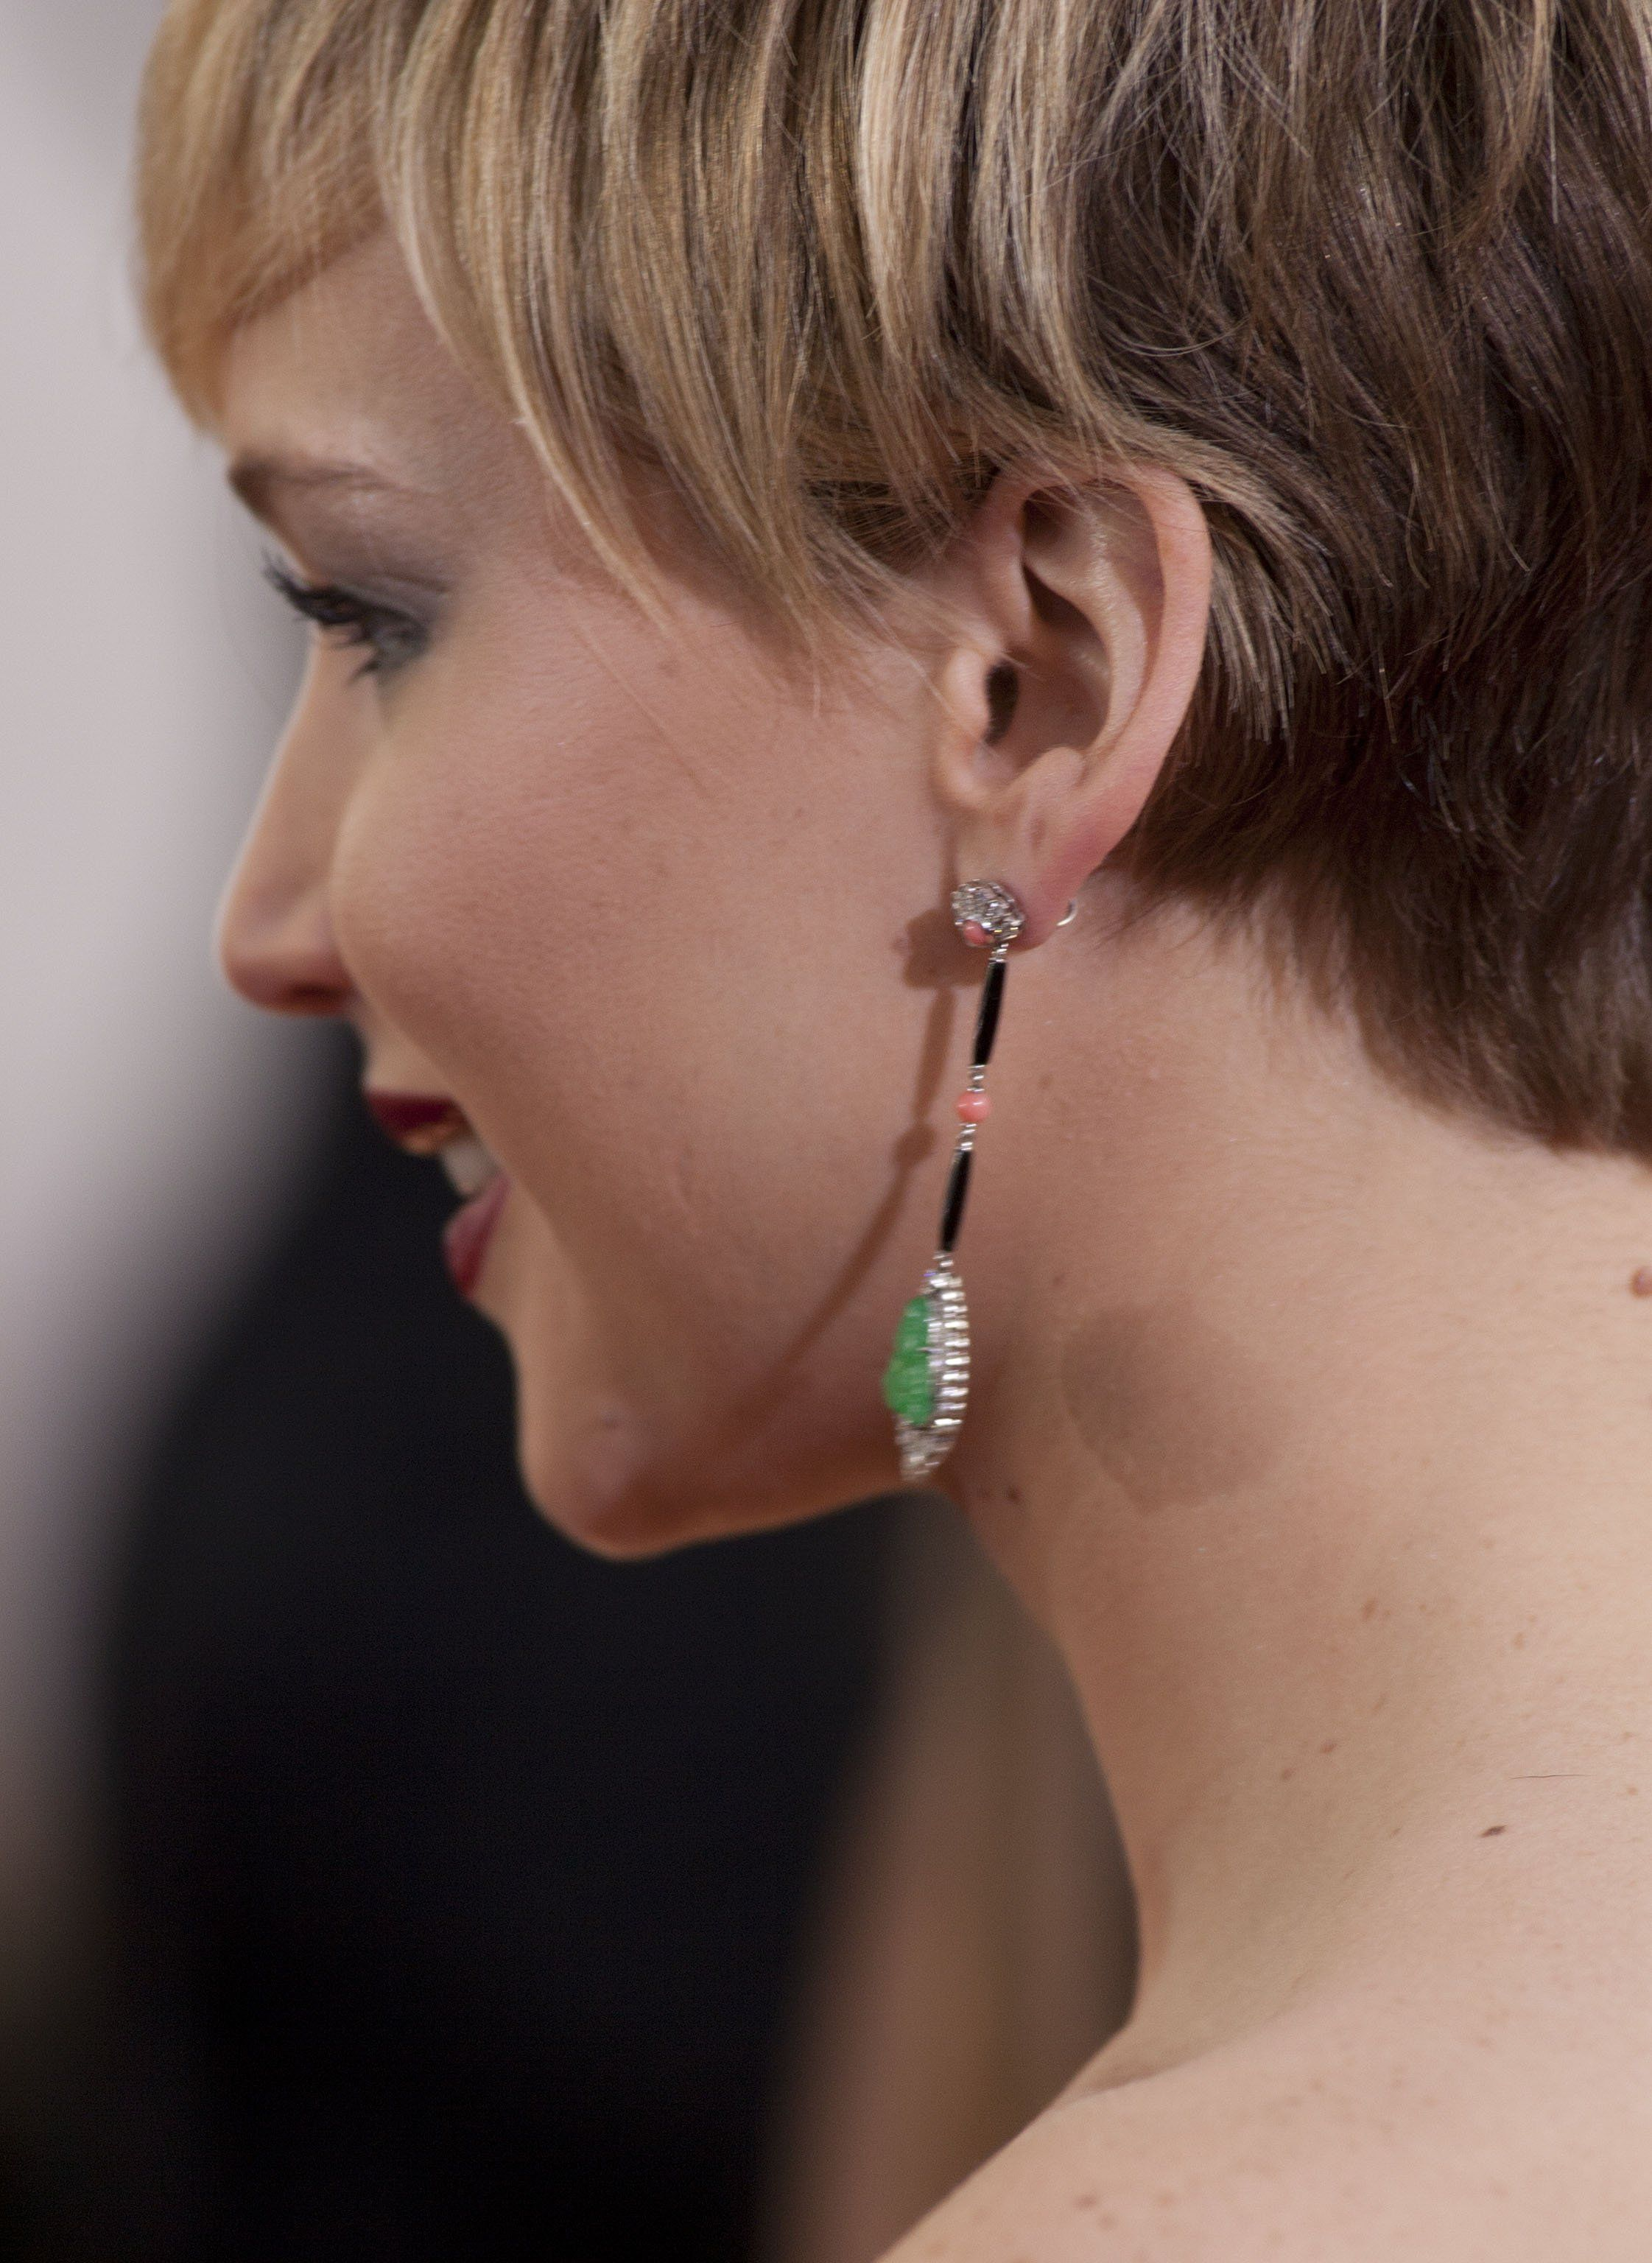 Jennifer Lawrence wearing Neil Lane jewelry – Golden Globe Awards #2014